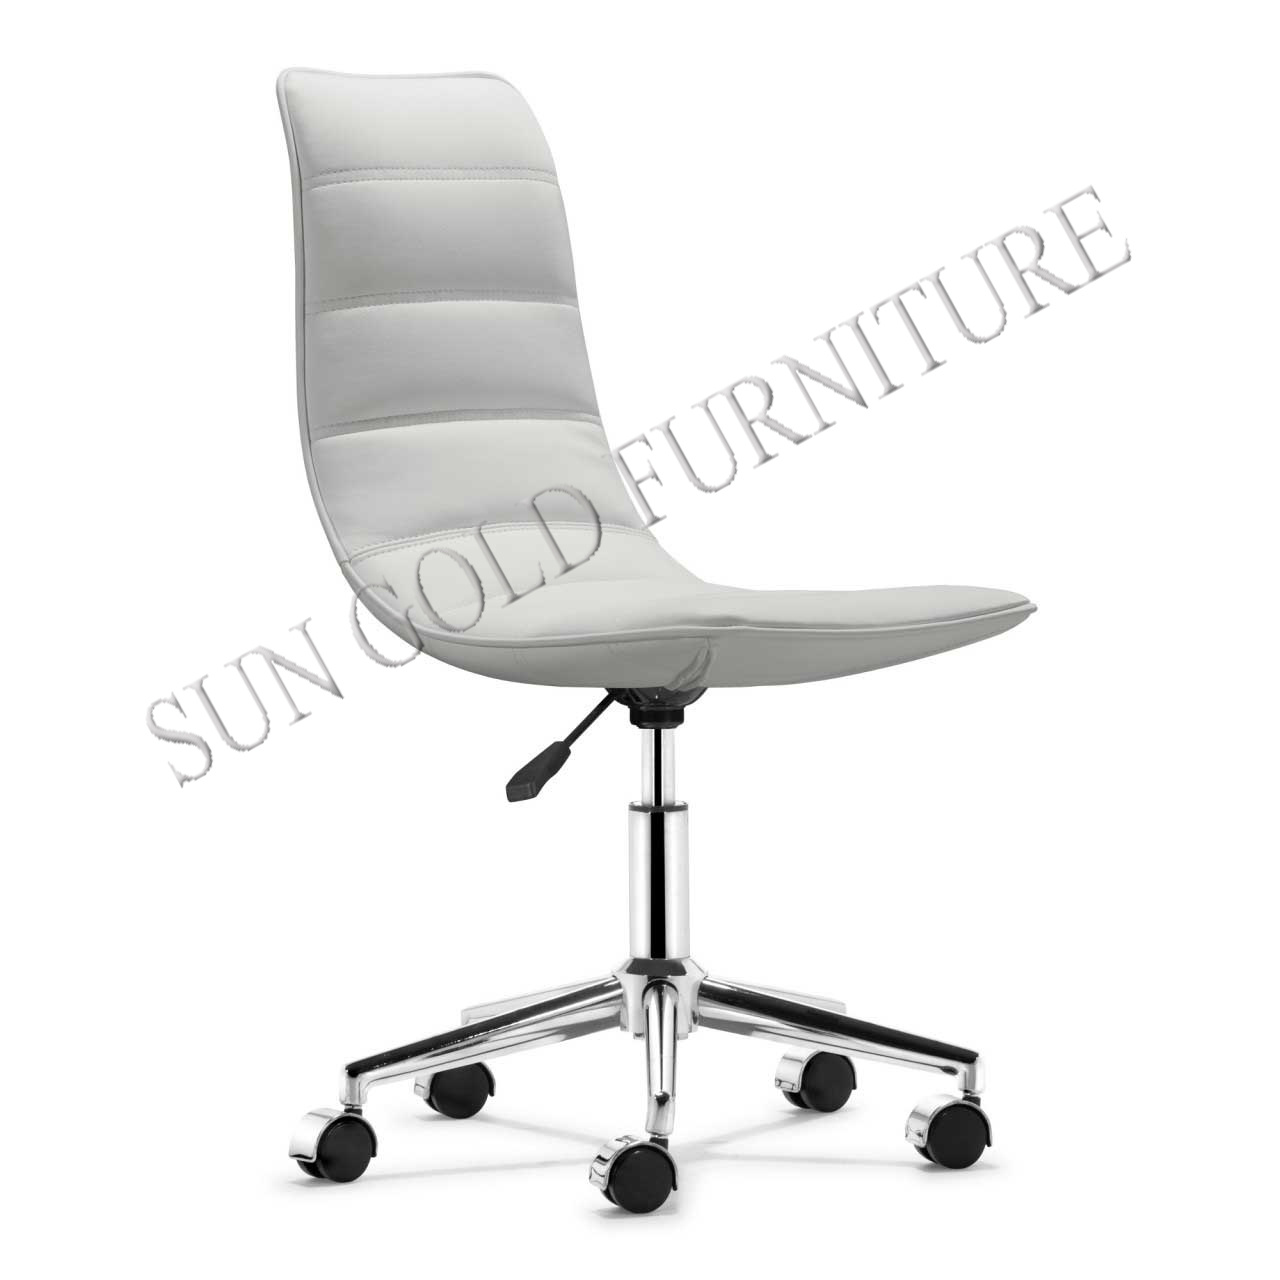 Miraculous Hot Item Sz Ocy126 Armless White Stylish Office Chair Arc Shaped Chair Gmtry Best Dining Table And Chair Ideas Images Gmtryco